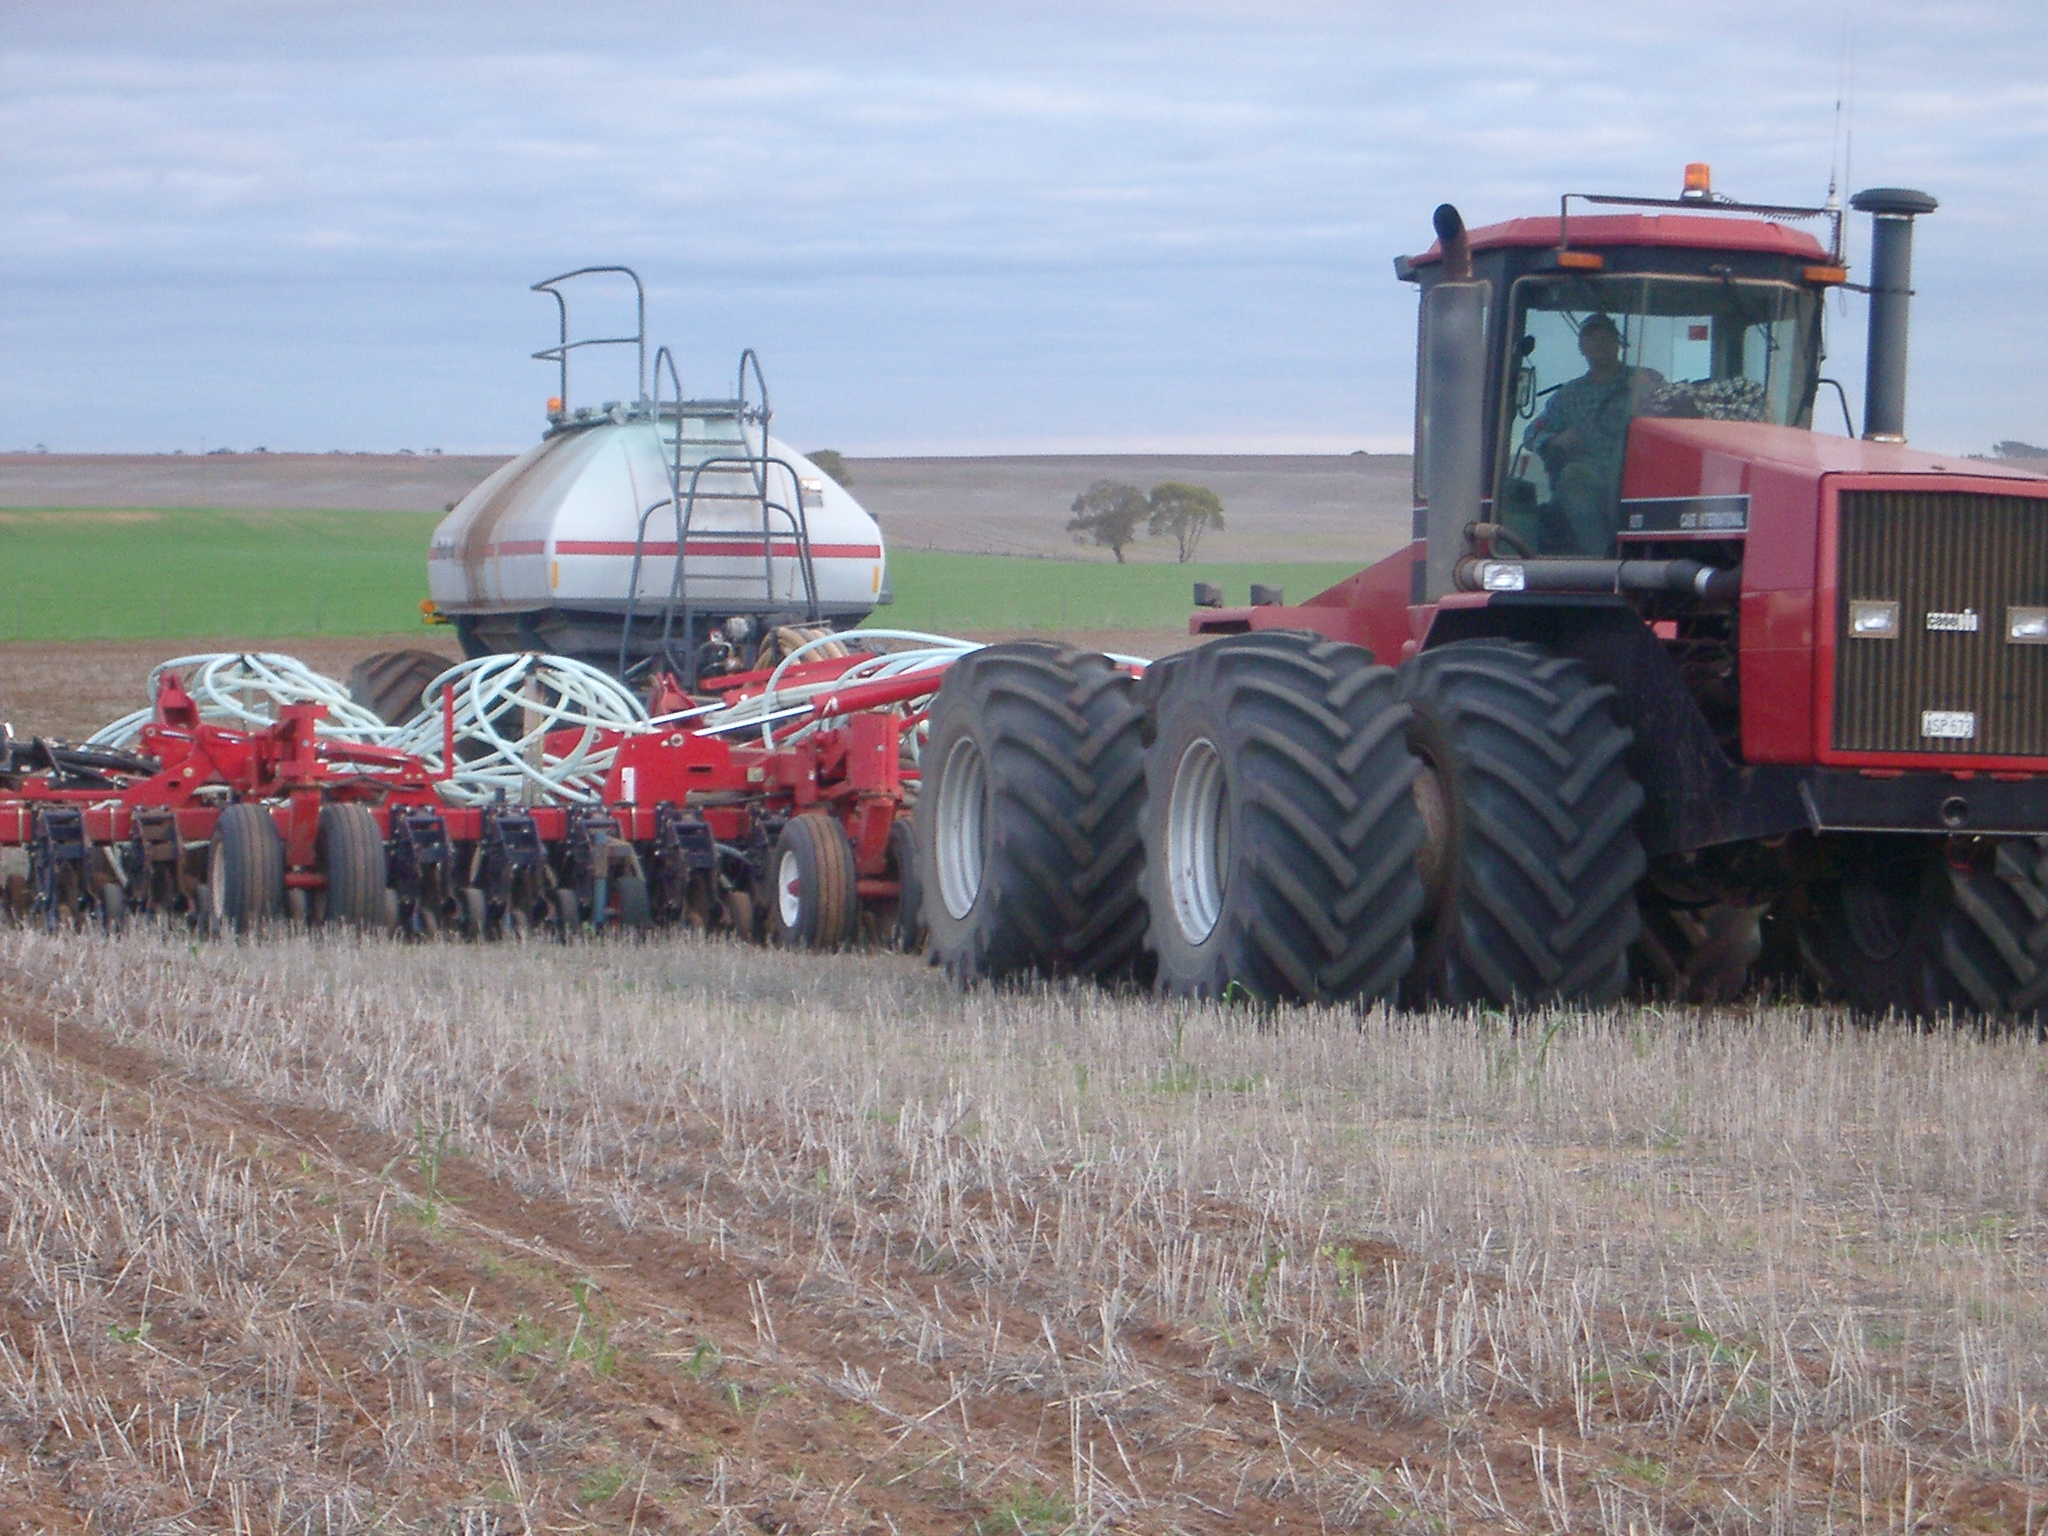 Tractor pulling a seeding rig.